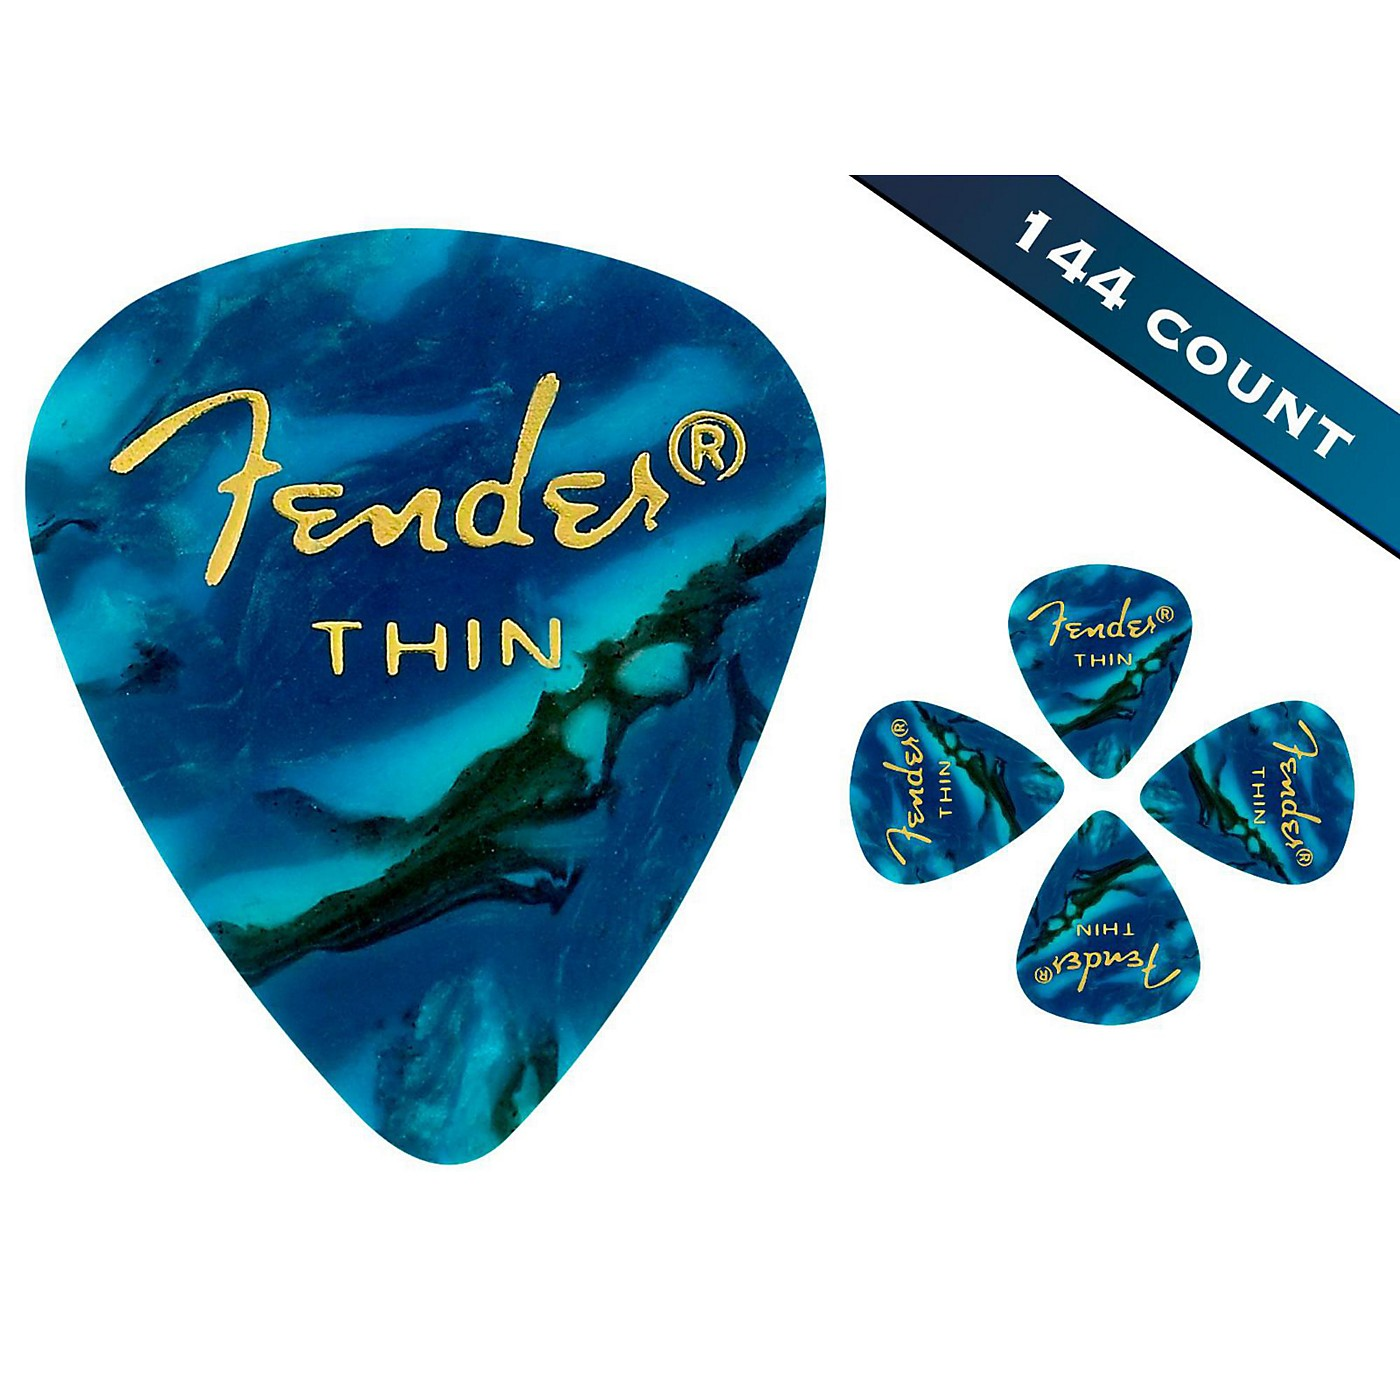 Fender 351 Premium Thin Guitar Picks - 144 Count thumbnail